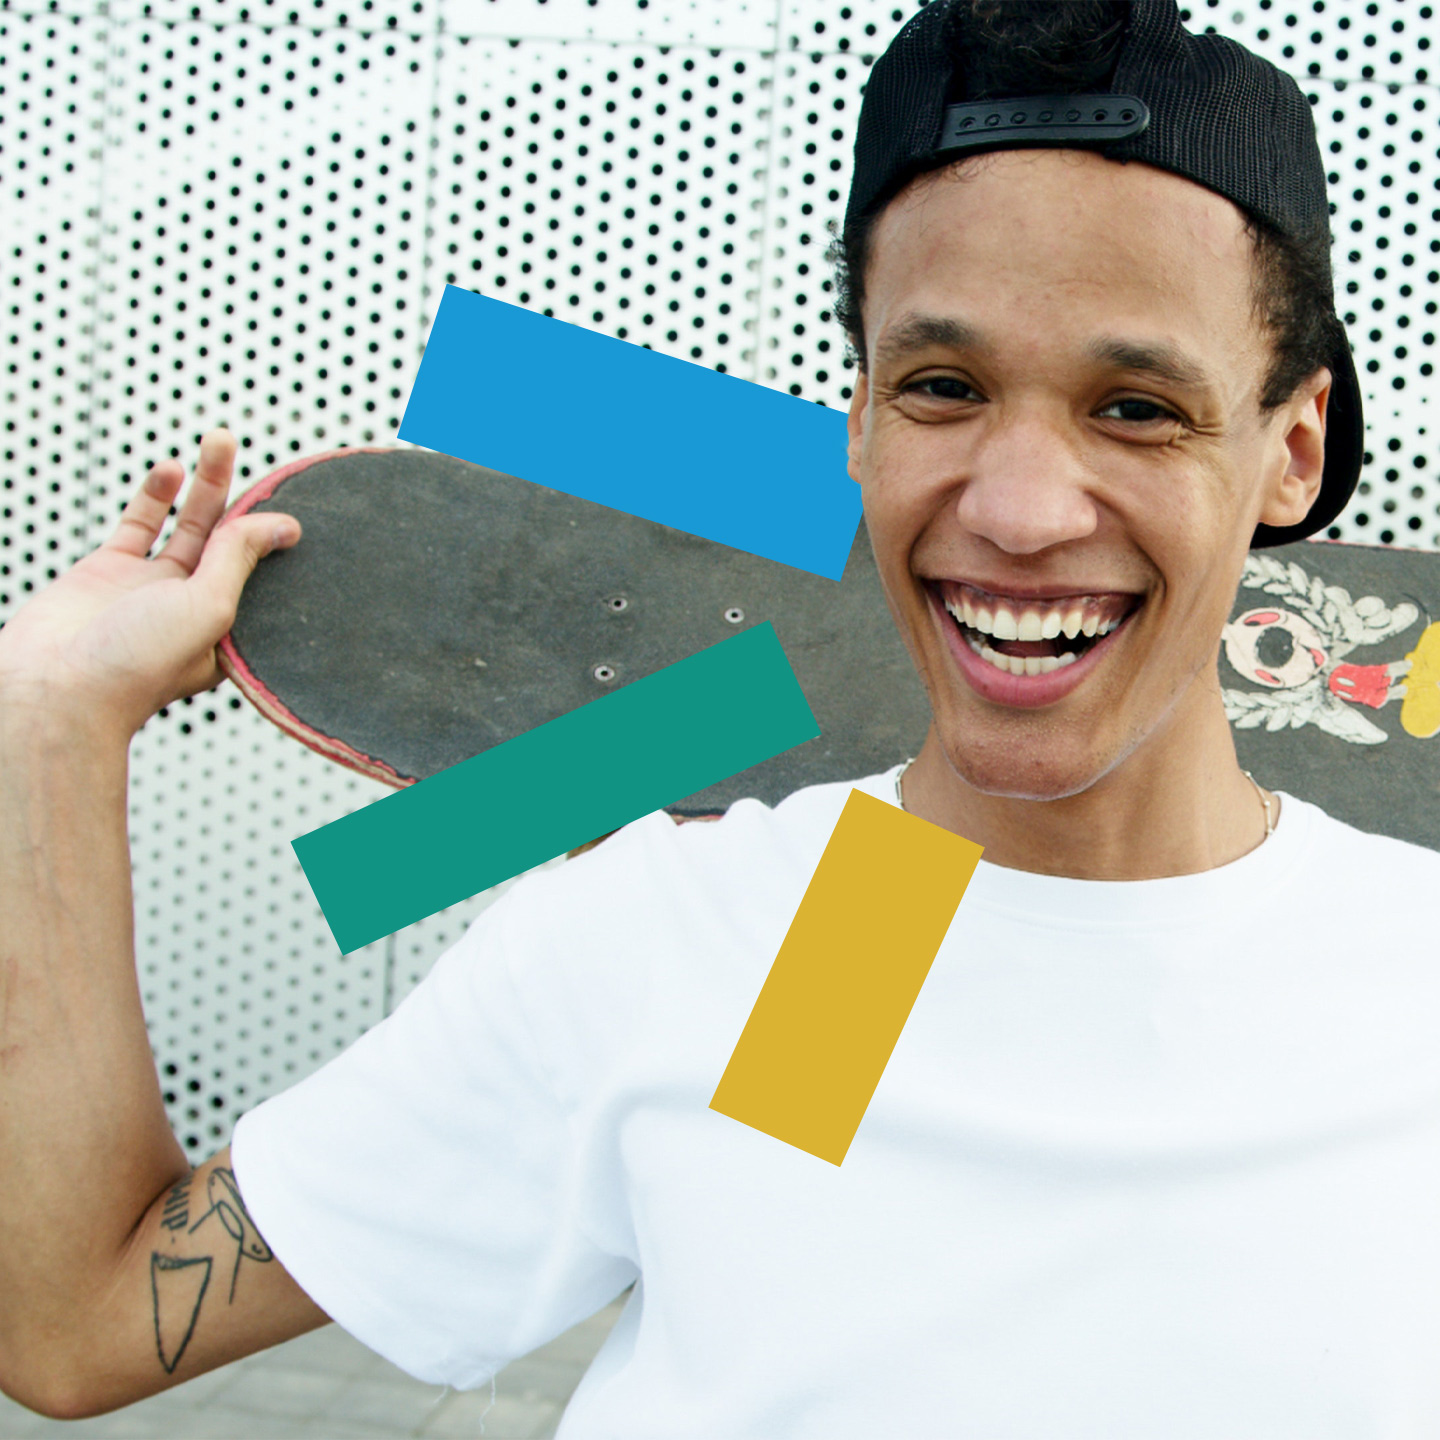 Man Laughing and holding a skateboard